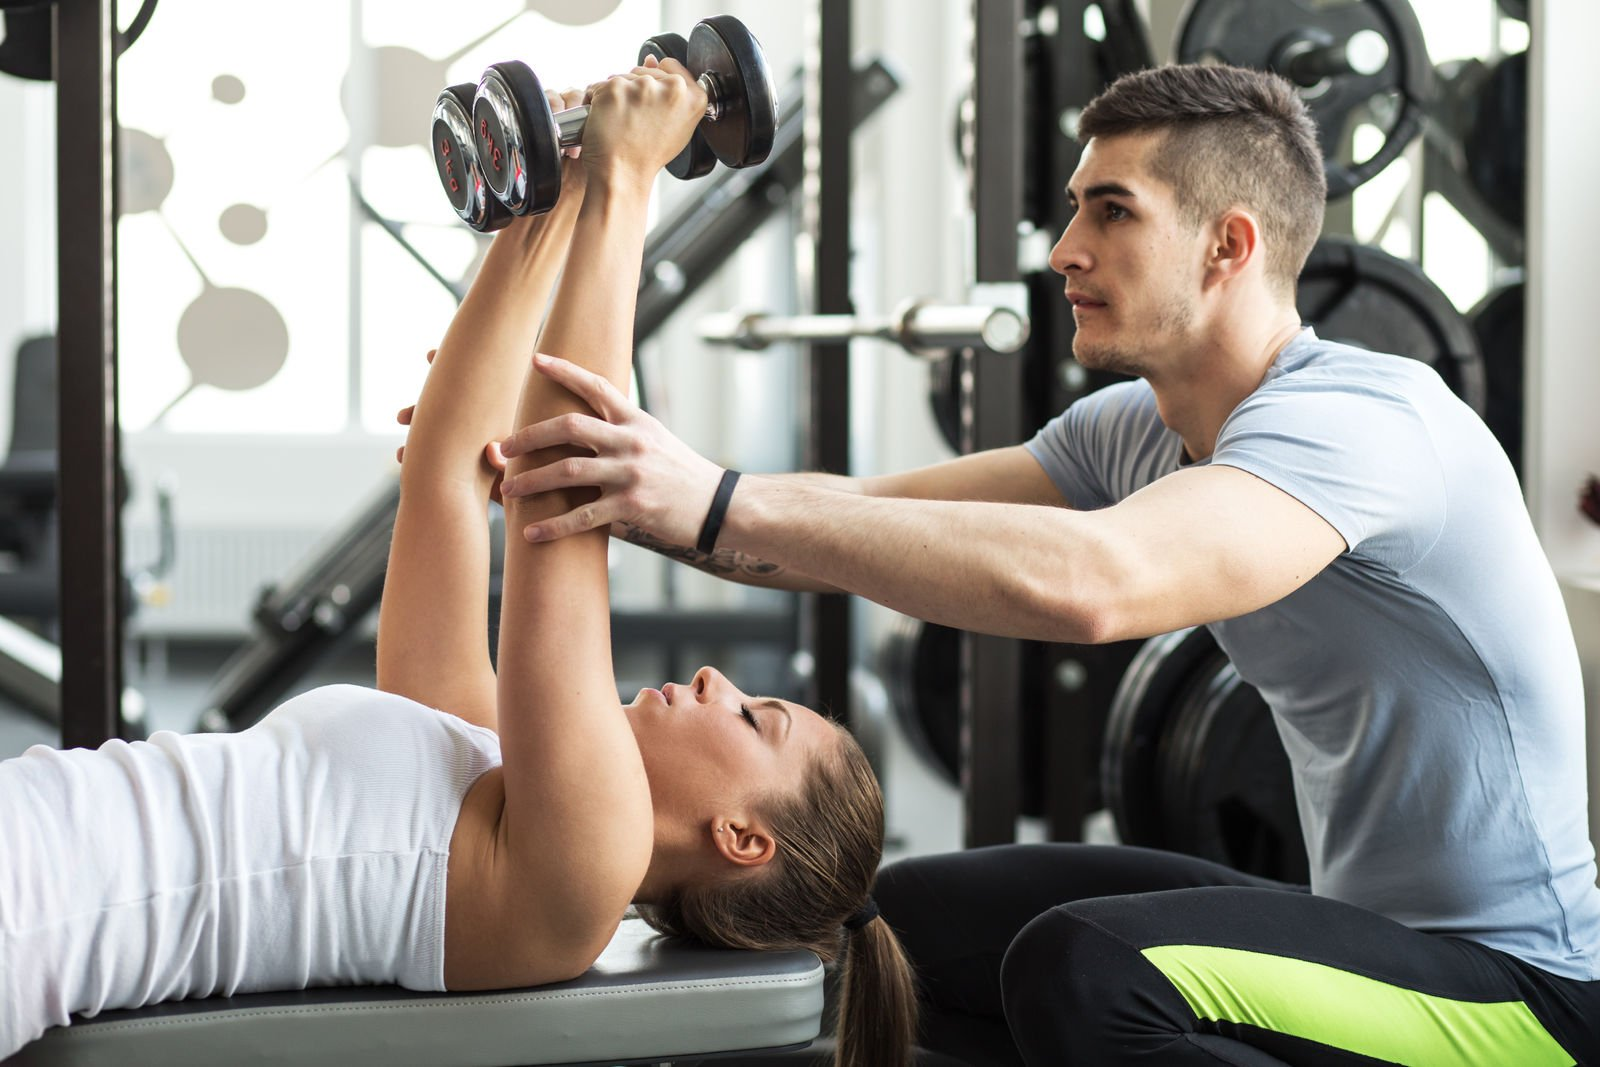 Review Nsca Personal Trainer Certification Exercise Blog